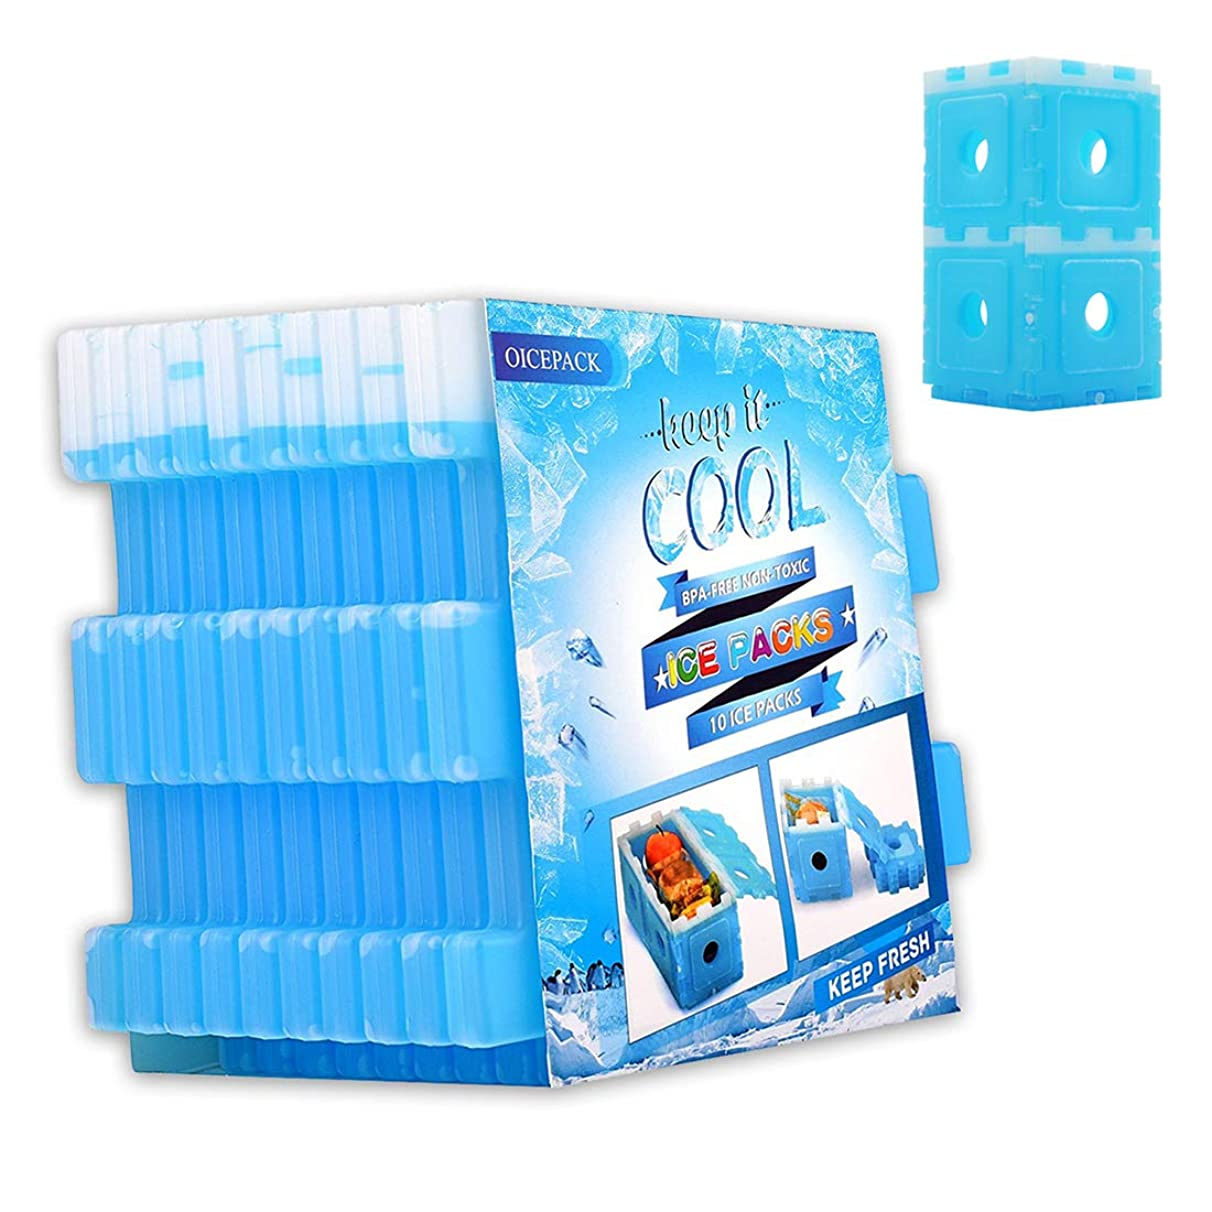 Slim Freezer Packs Reusable Ice Packs for Coolers and Lunch Box, DIY Box Ice Cube Food Chiller for School Kids Office Worker Travel Camping Picnic by OICEPACK